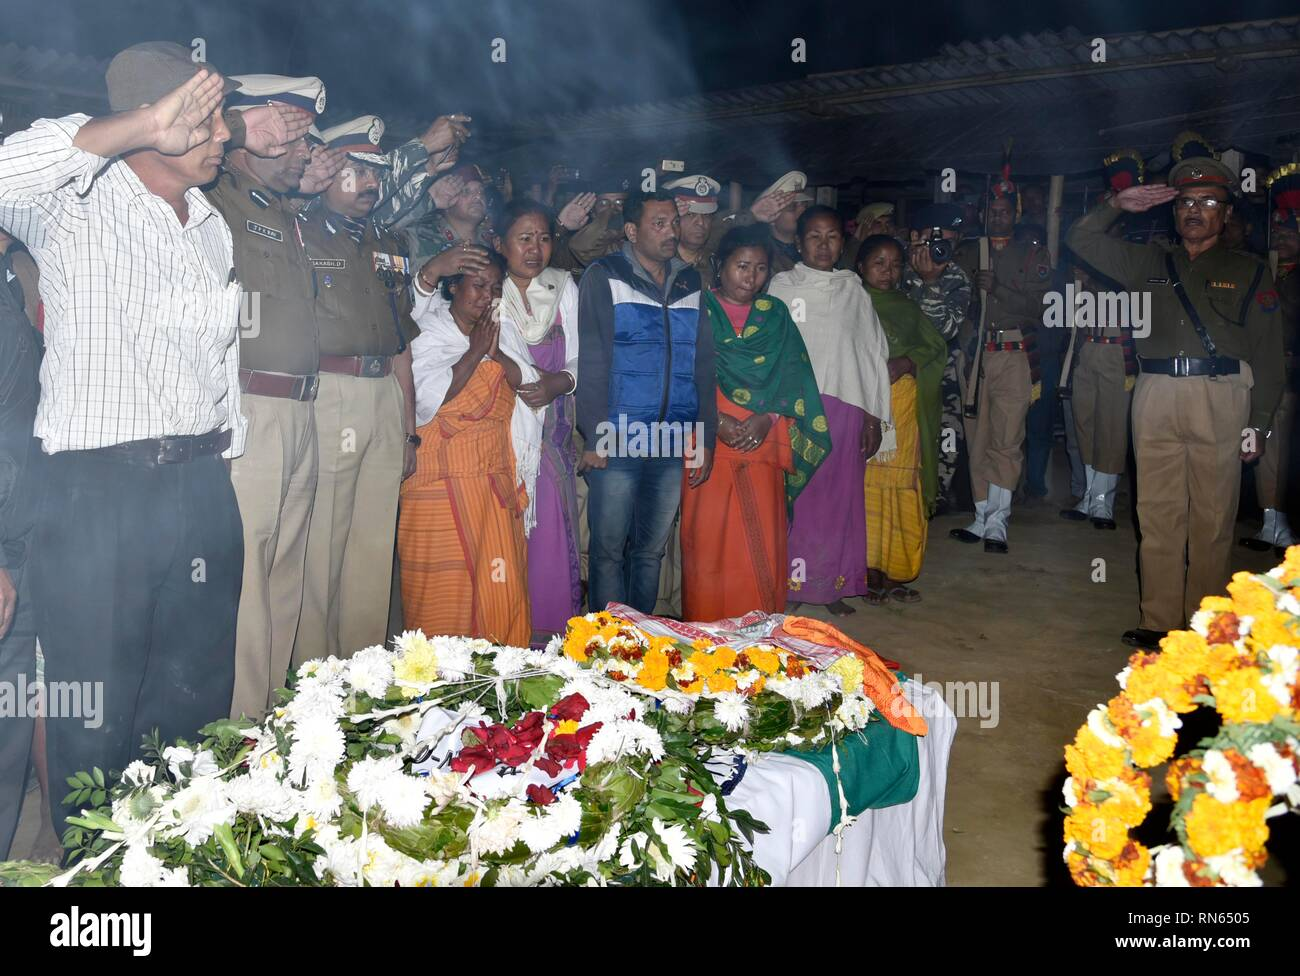 Assam, India. 16th Feb, 2019. Martyr Maneshwar Basumatary. Baksa, Assam, India. 16February 2019. Wife and other family members of slain Central Reserve Police Force (CRPF) soldier, Maneshwar Basumatary mourn near his coffin before his cremation ceremony at village Tamulpur in Baksa district, Assam, India, 16 February 2019. At least 44 Indian paramilitary Central Reserve Police Force personnel were killed and several injured when a Jaish-e-Mohammed militant rammed an explosive-laden vehicle into a CRPF convoy along the Srinagar-Jammu highway at Lethpora area in South Kashmir's Pulwama district  - Stock Image